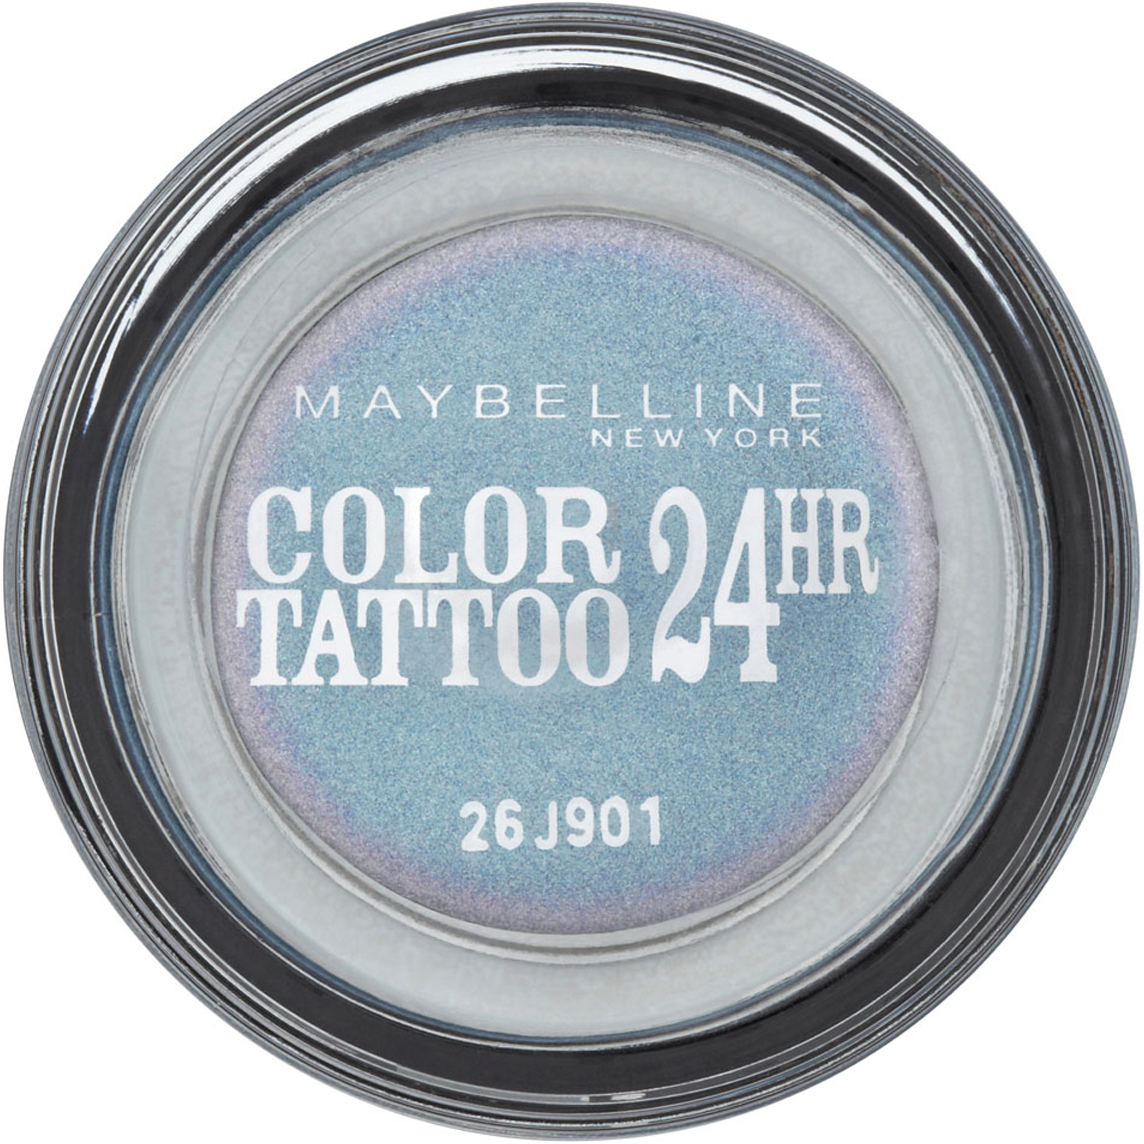 Maybelline New York Maybelline New York Тени для век